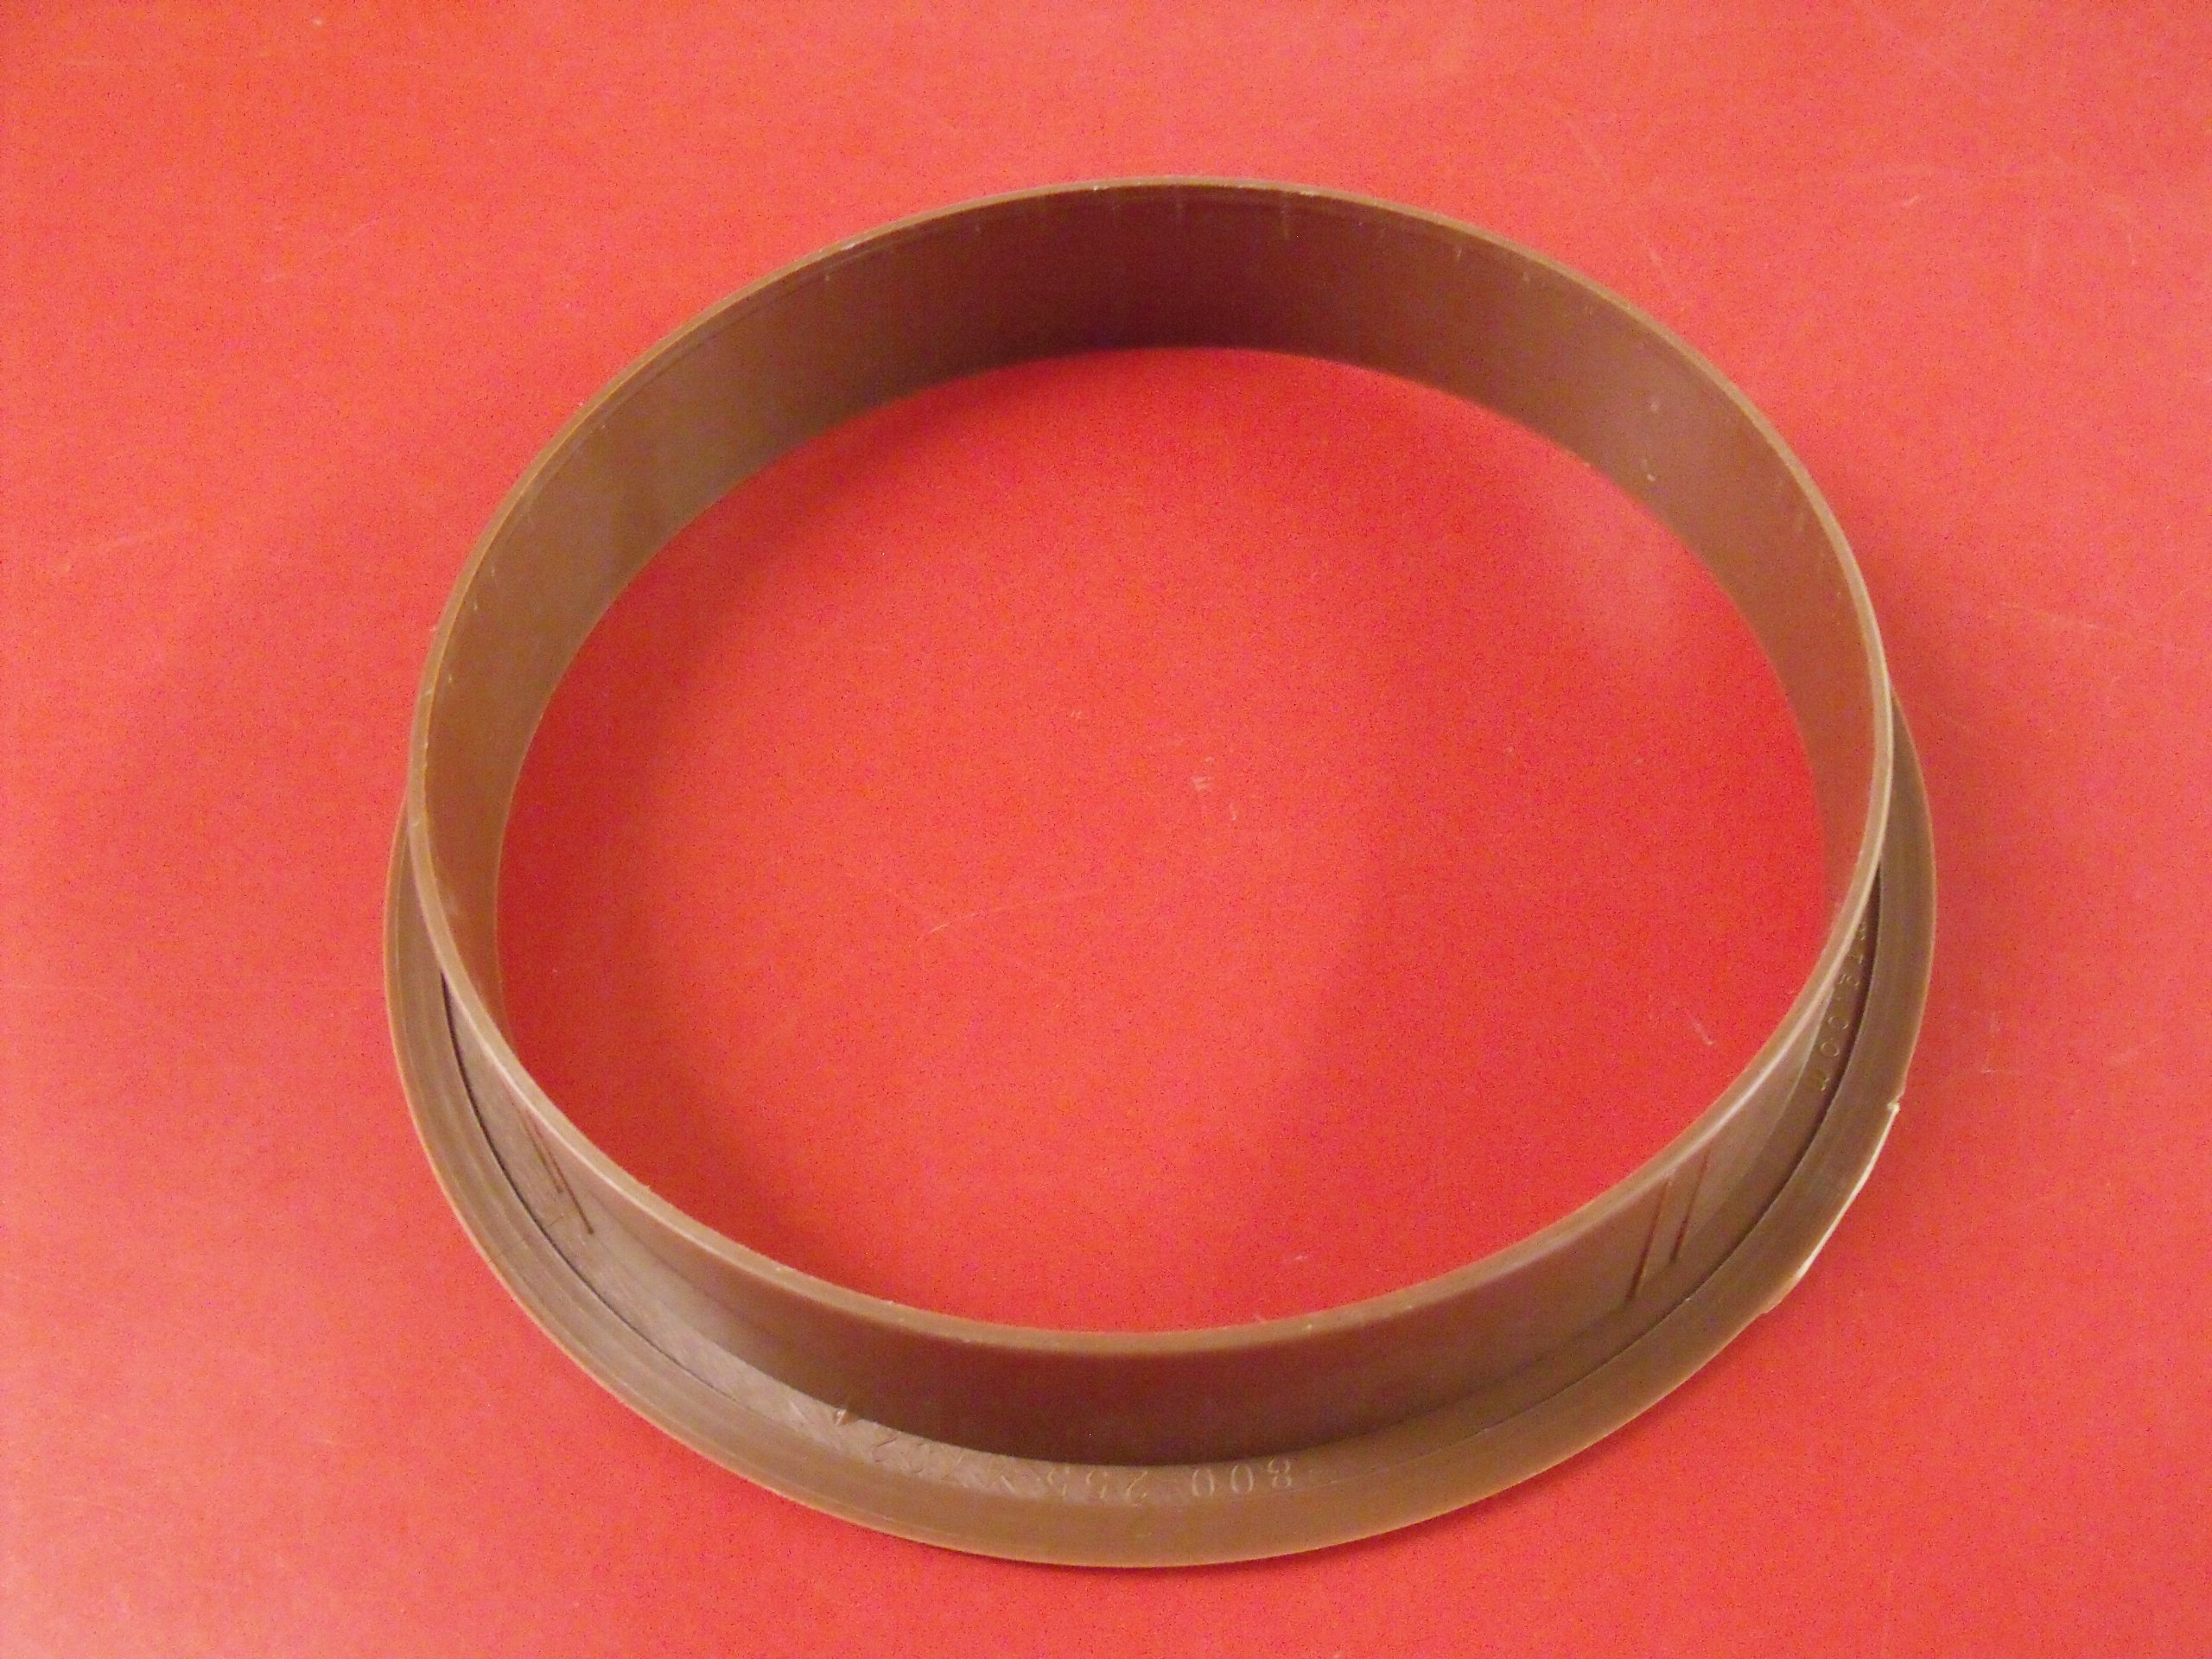 5 Cocoa Brown Finishing Grommet #1044CCBR by Bmi (Image #2)